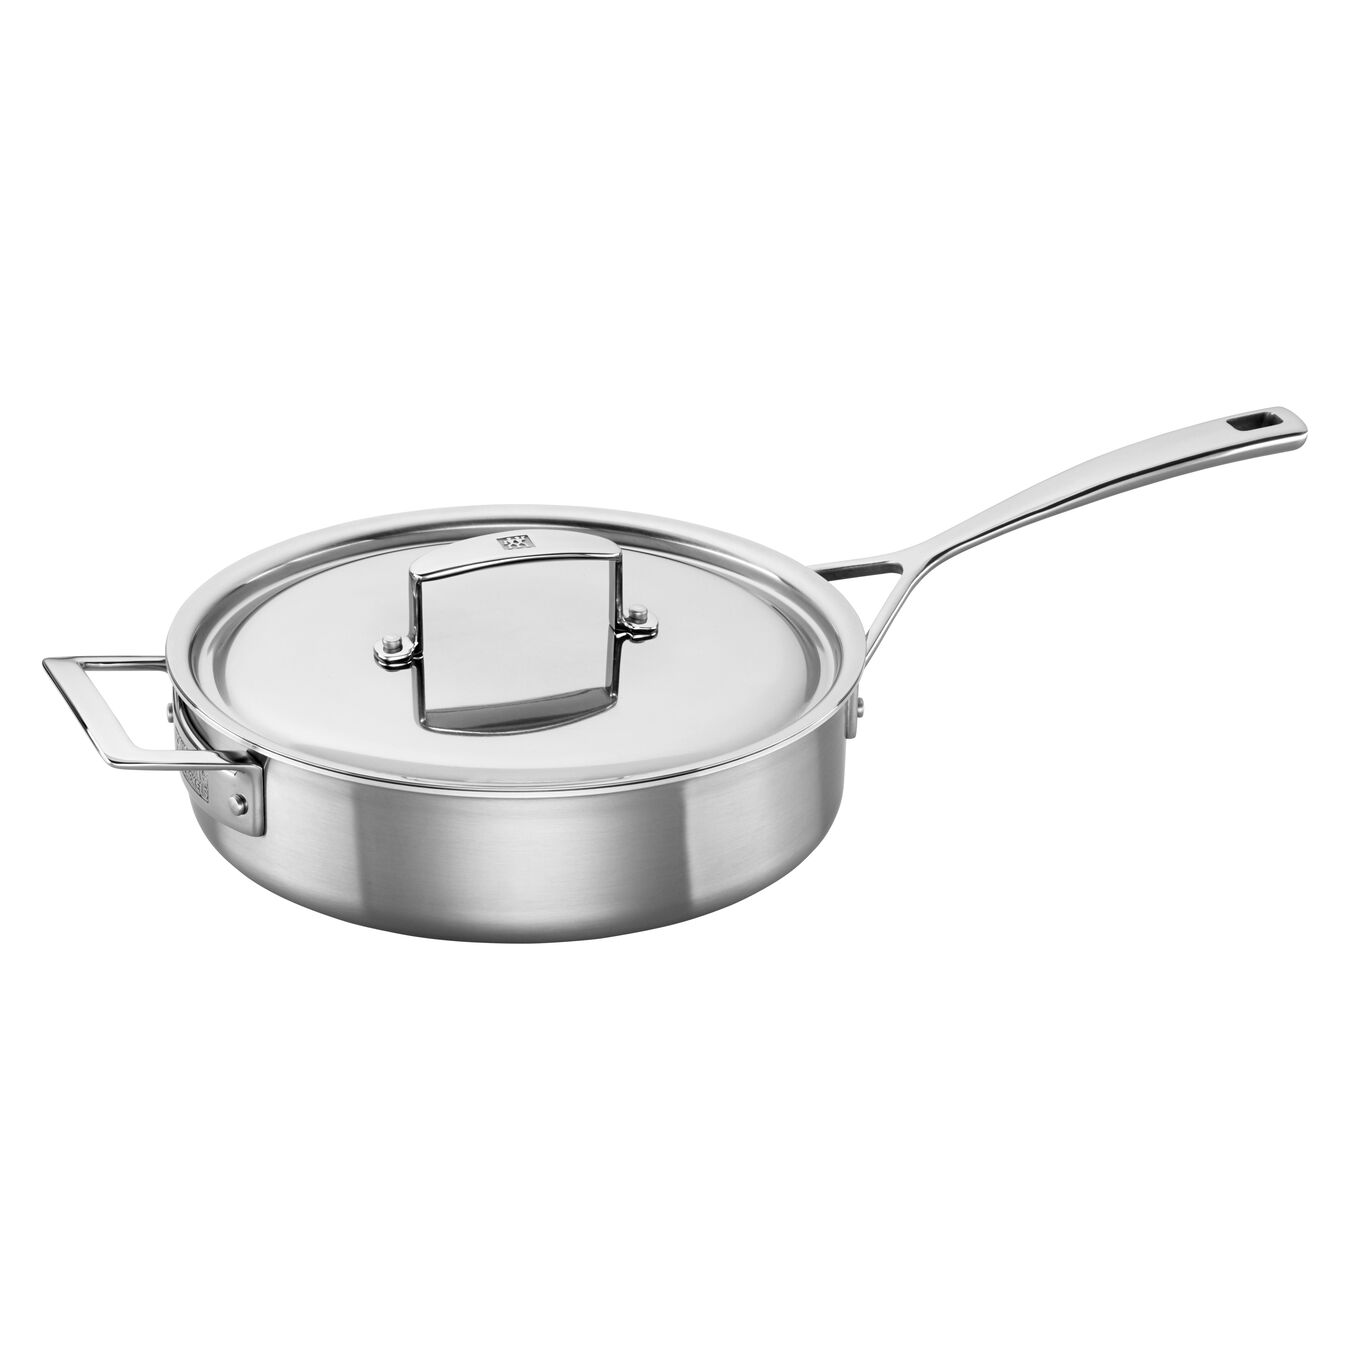 5 Ply, 18/10 Stainless Steel, 9.5-inch, Saute pan with lid,,large 1